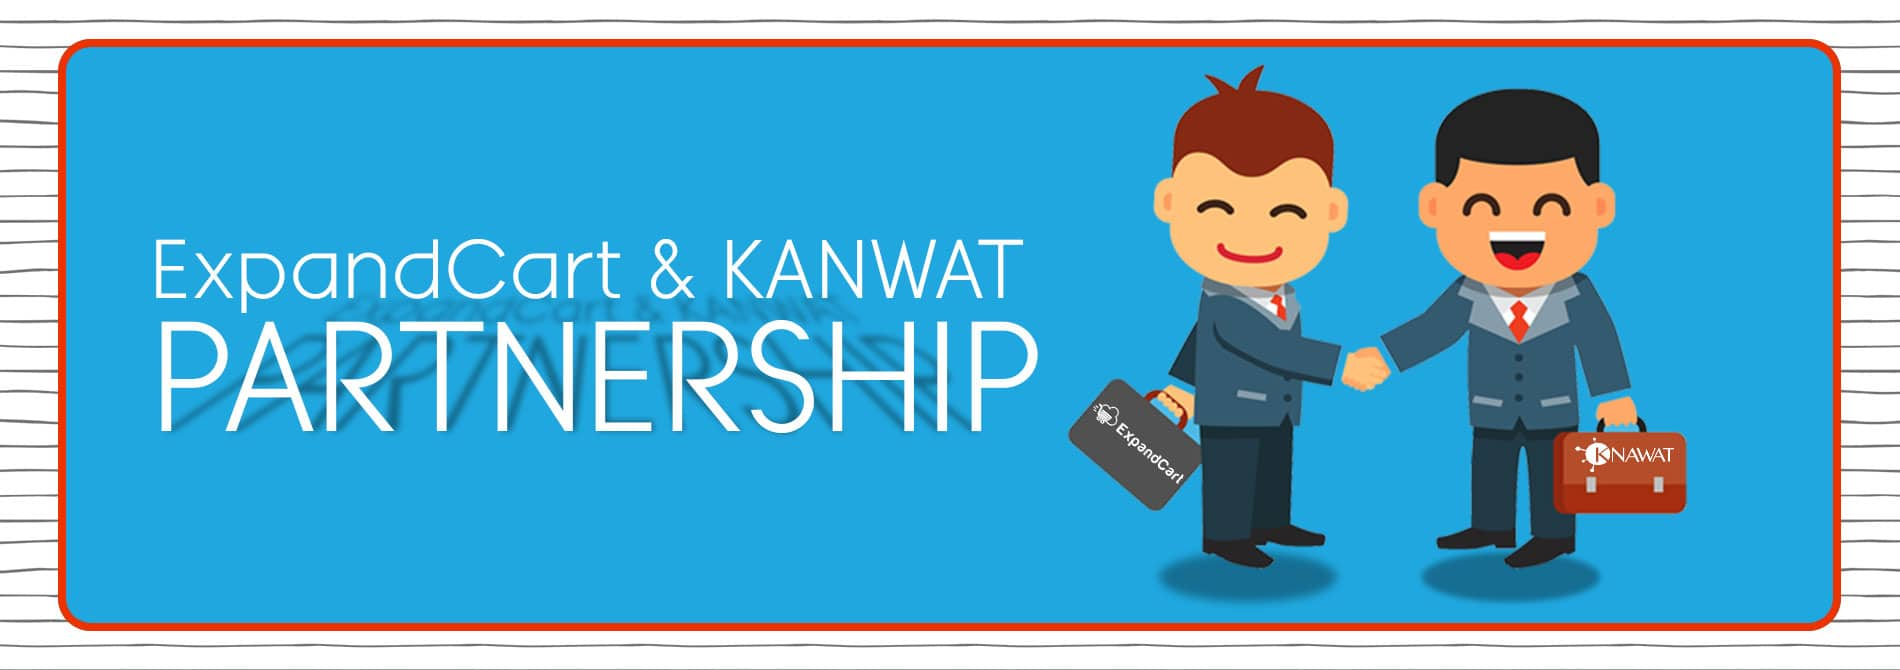 ExpandCart Has Made A Strategic Partnership with Knawat to Empower Drop Shipping in The Region